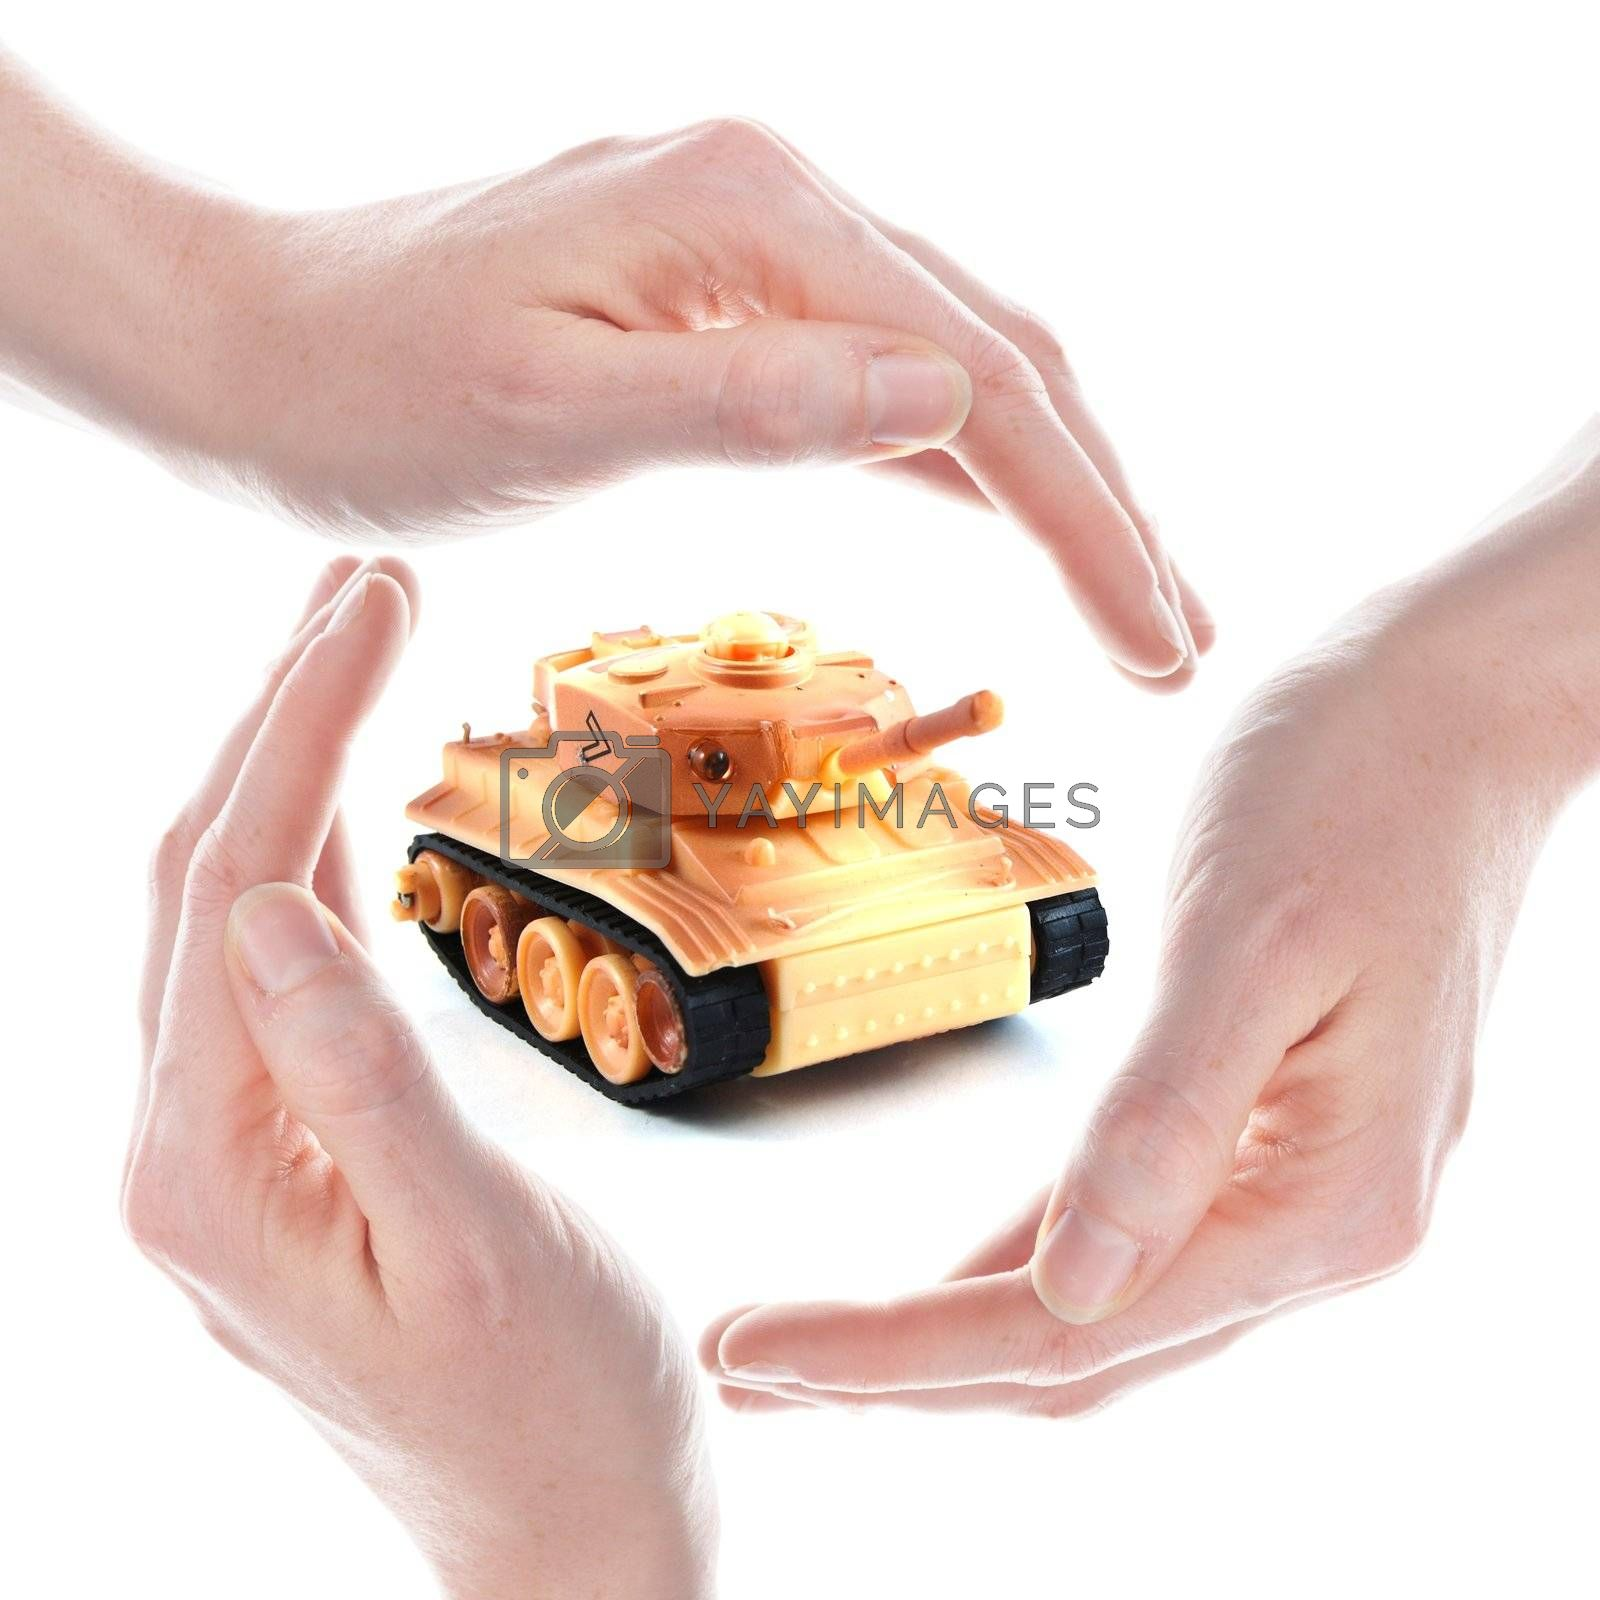 peace concept with toy tank and hand isolated on white background